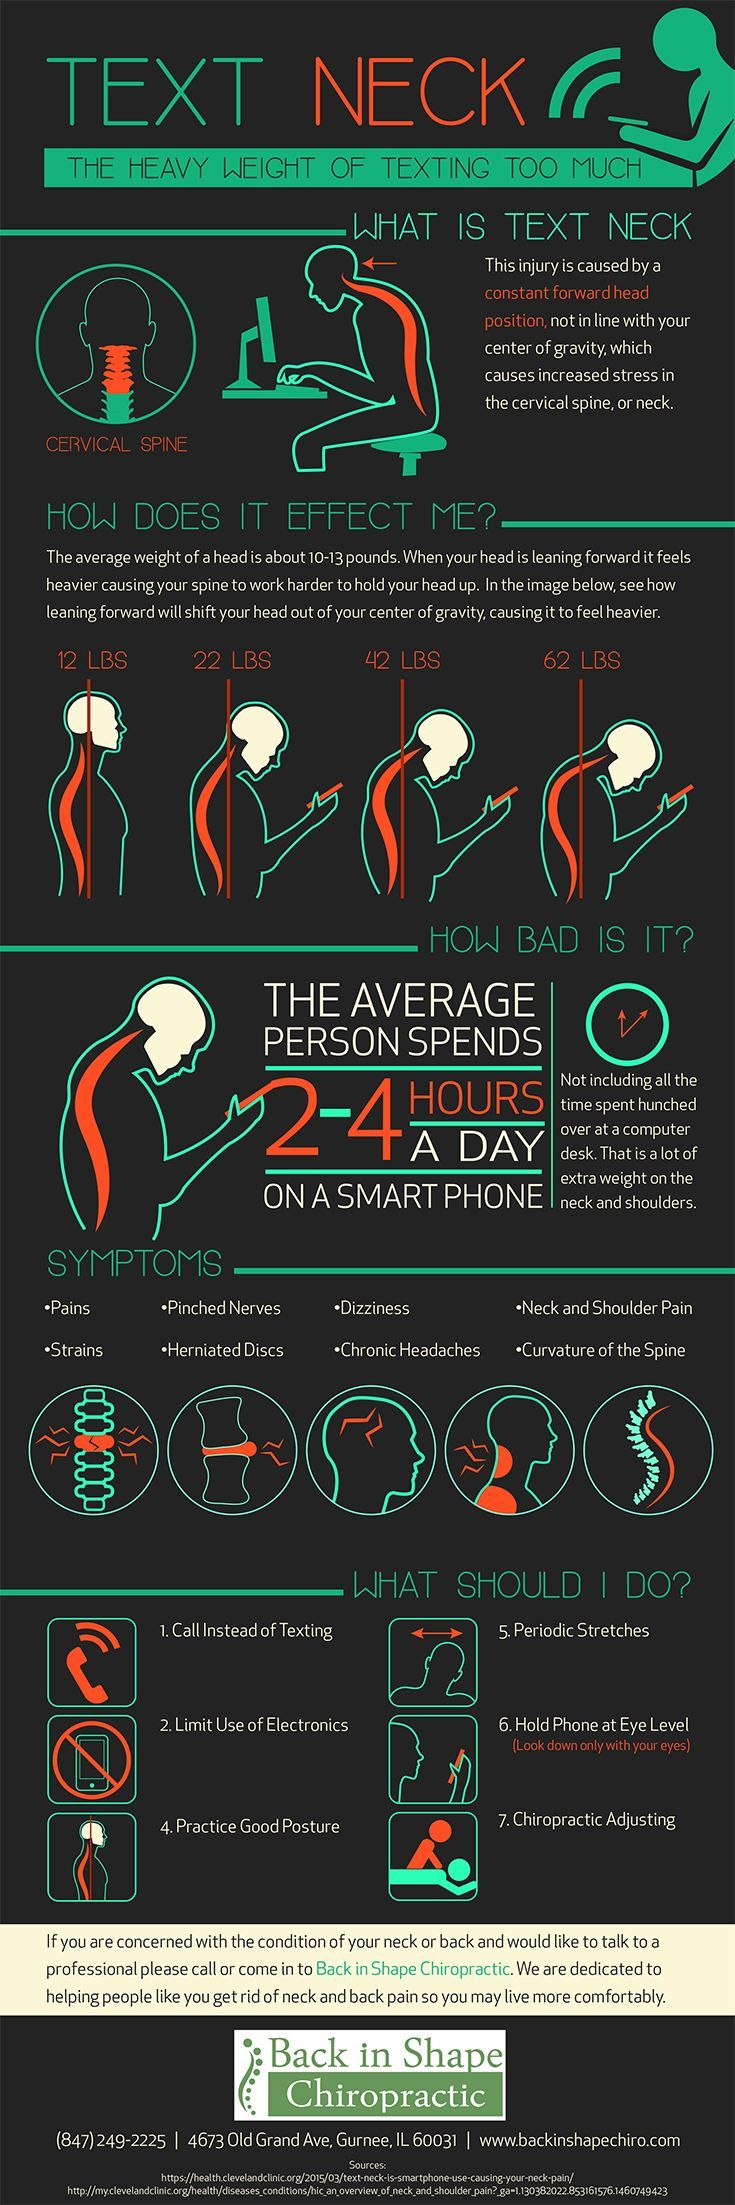 Among the most common reasons people visit the chiropractor is neck pain caused by text-neck. Take these preventative measures to lower neck pain today. Select-Care Chiropractic, P.C.  518.373.6545 Clifton Park, NY